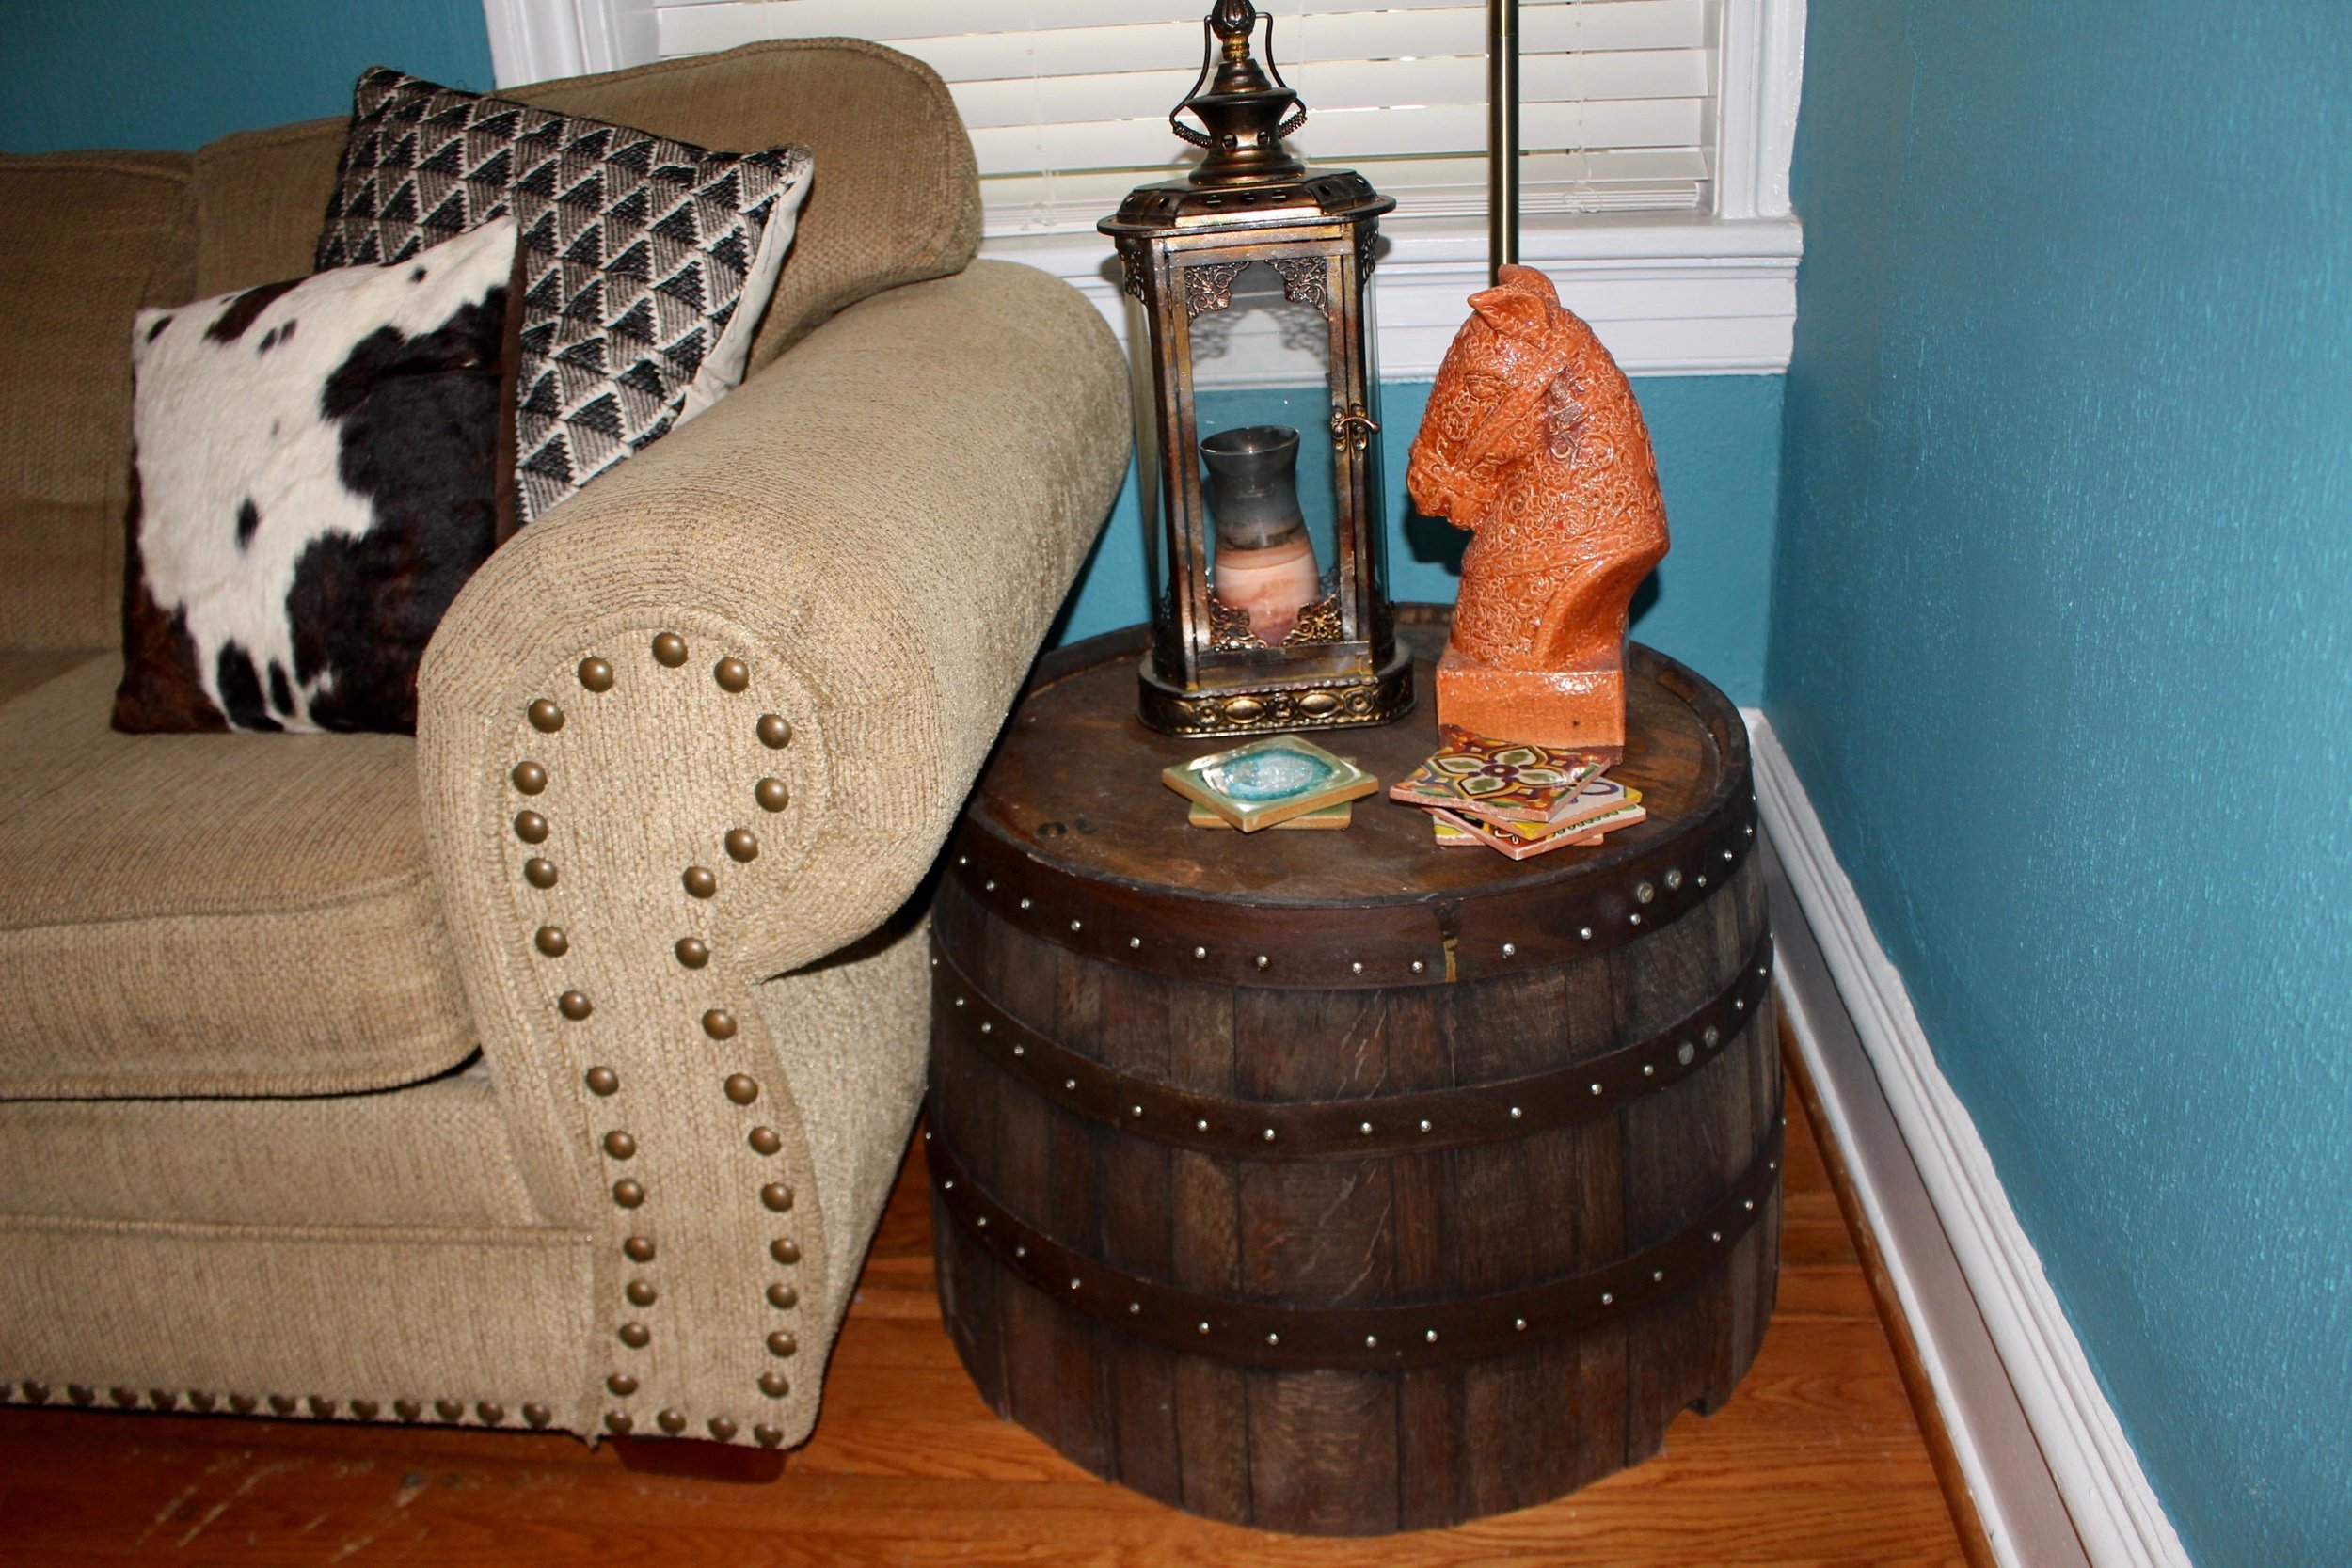 Barrels from the wedding reused as side tables in your home.